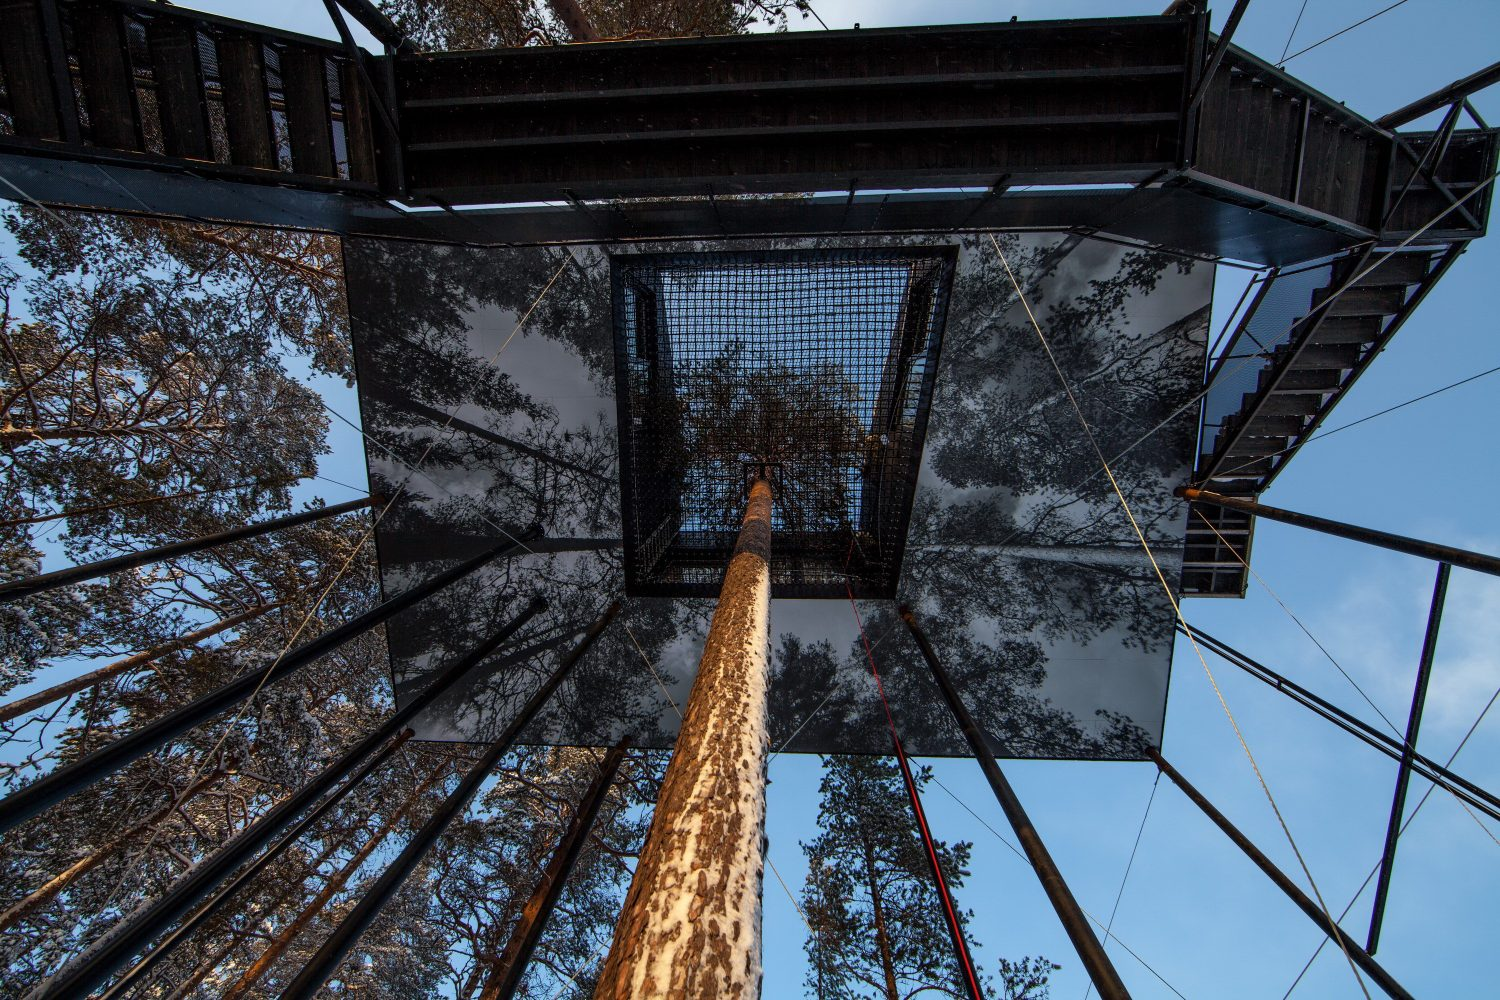 Treehotel – The 7th Room by Snøhetta